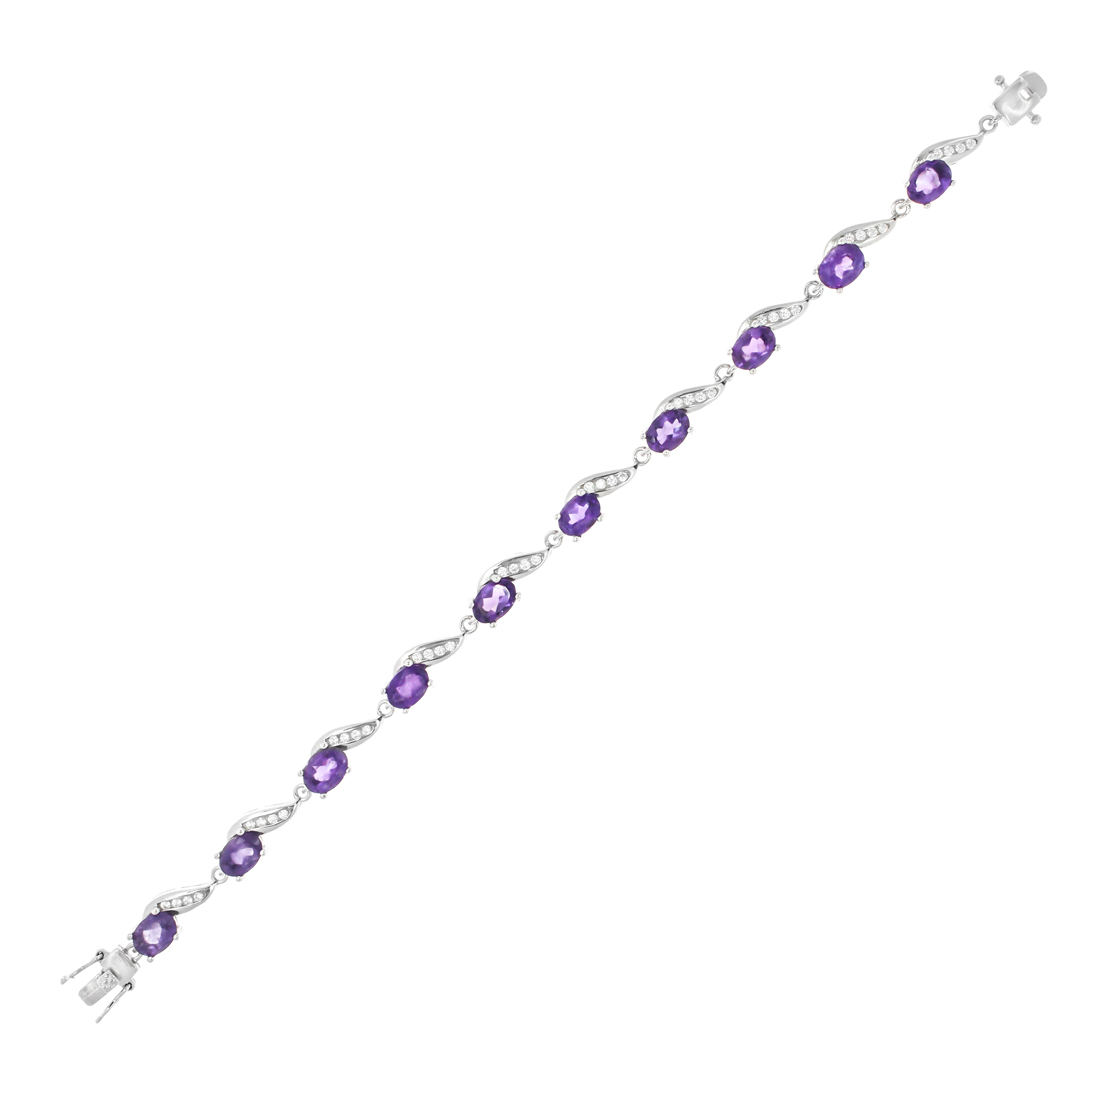 Amethyst & CZ Rhodium plated Bracelet 7.5 in